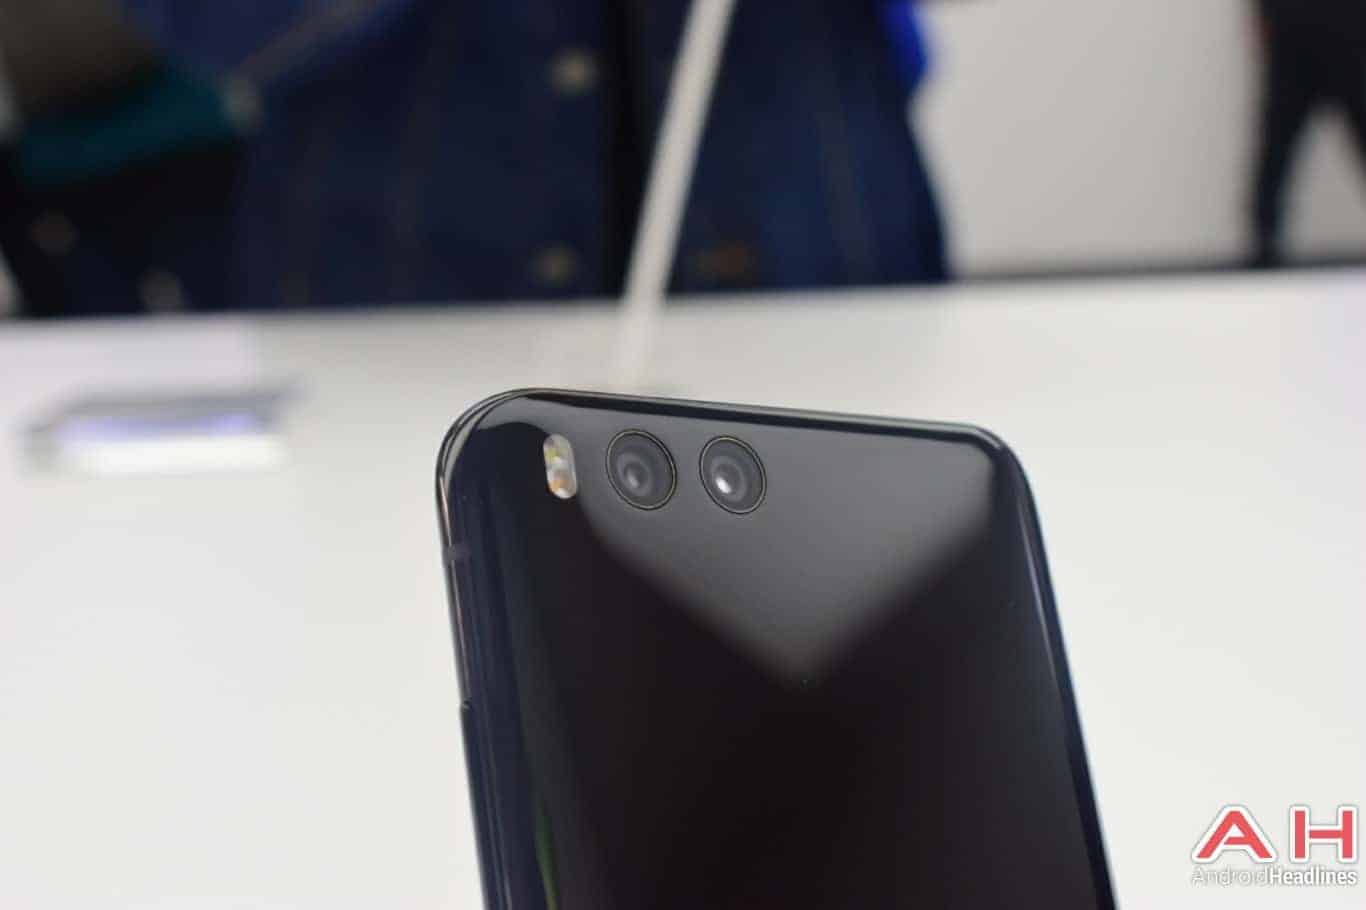 AH Xiaomi Mi 6 hands on 11